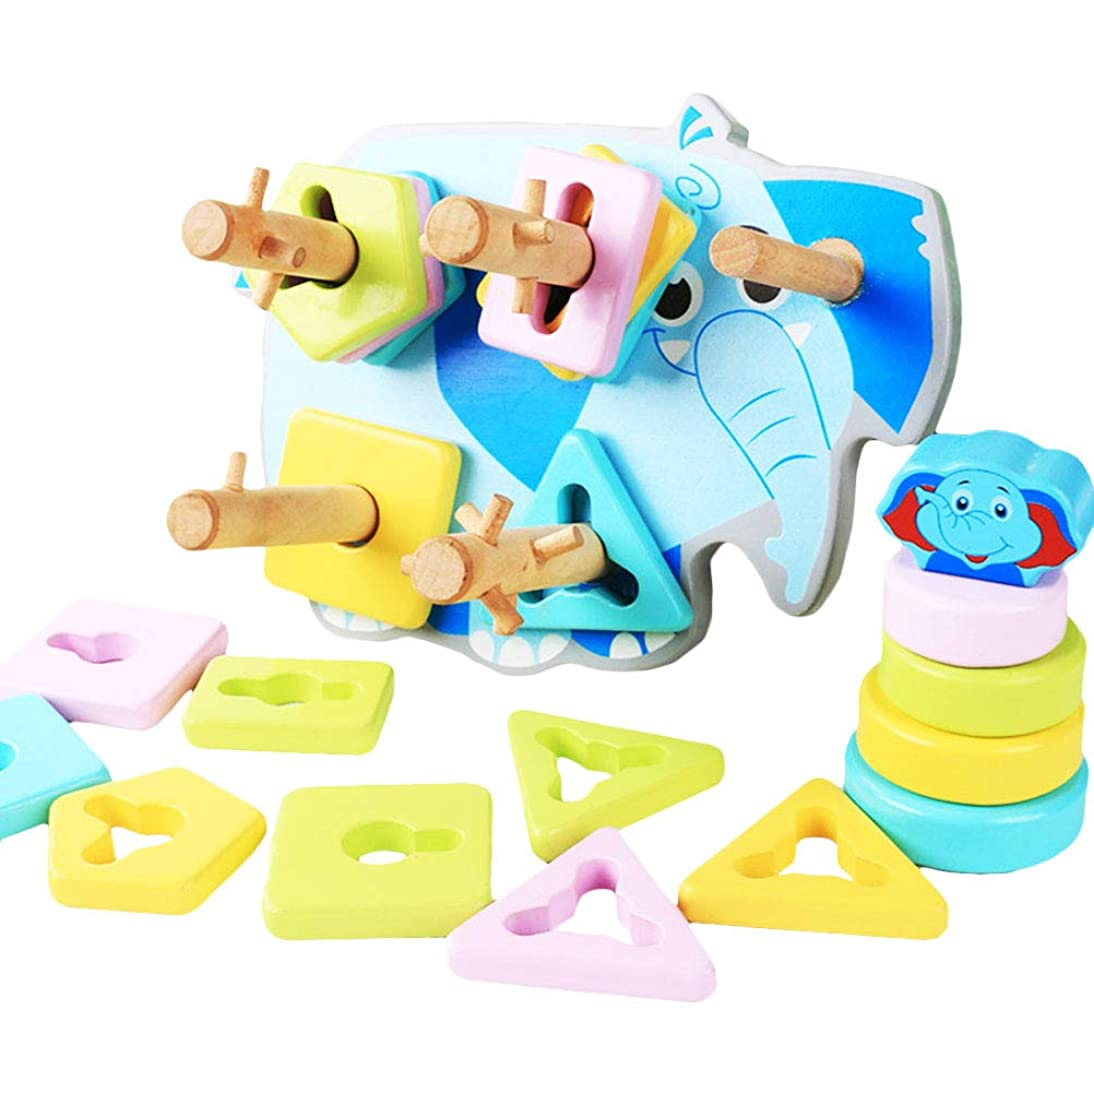 Toyvian Wooden Educational Toys Shape Color Sorting Recognition Geometric Preschool Stacking Ring Blocks Board Puzzles Toys for Kids twjk018126035137